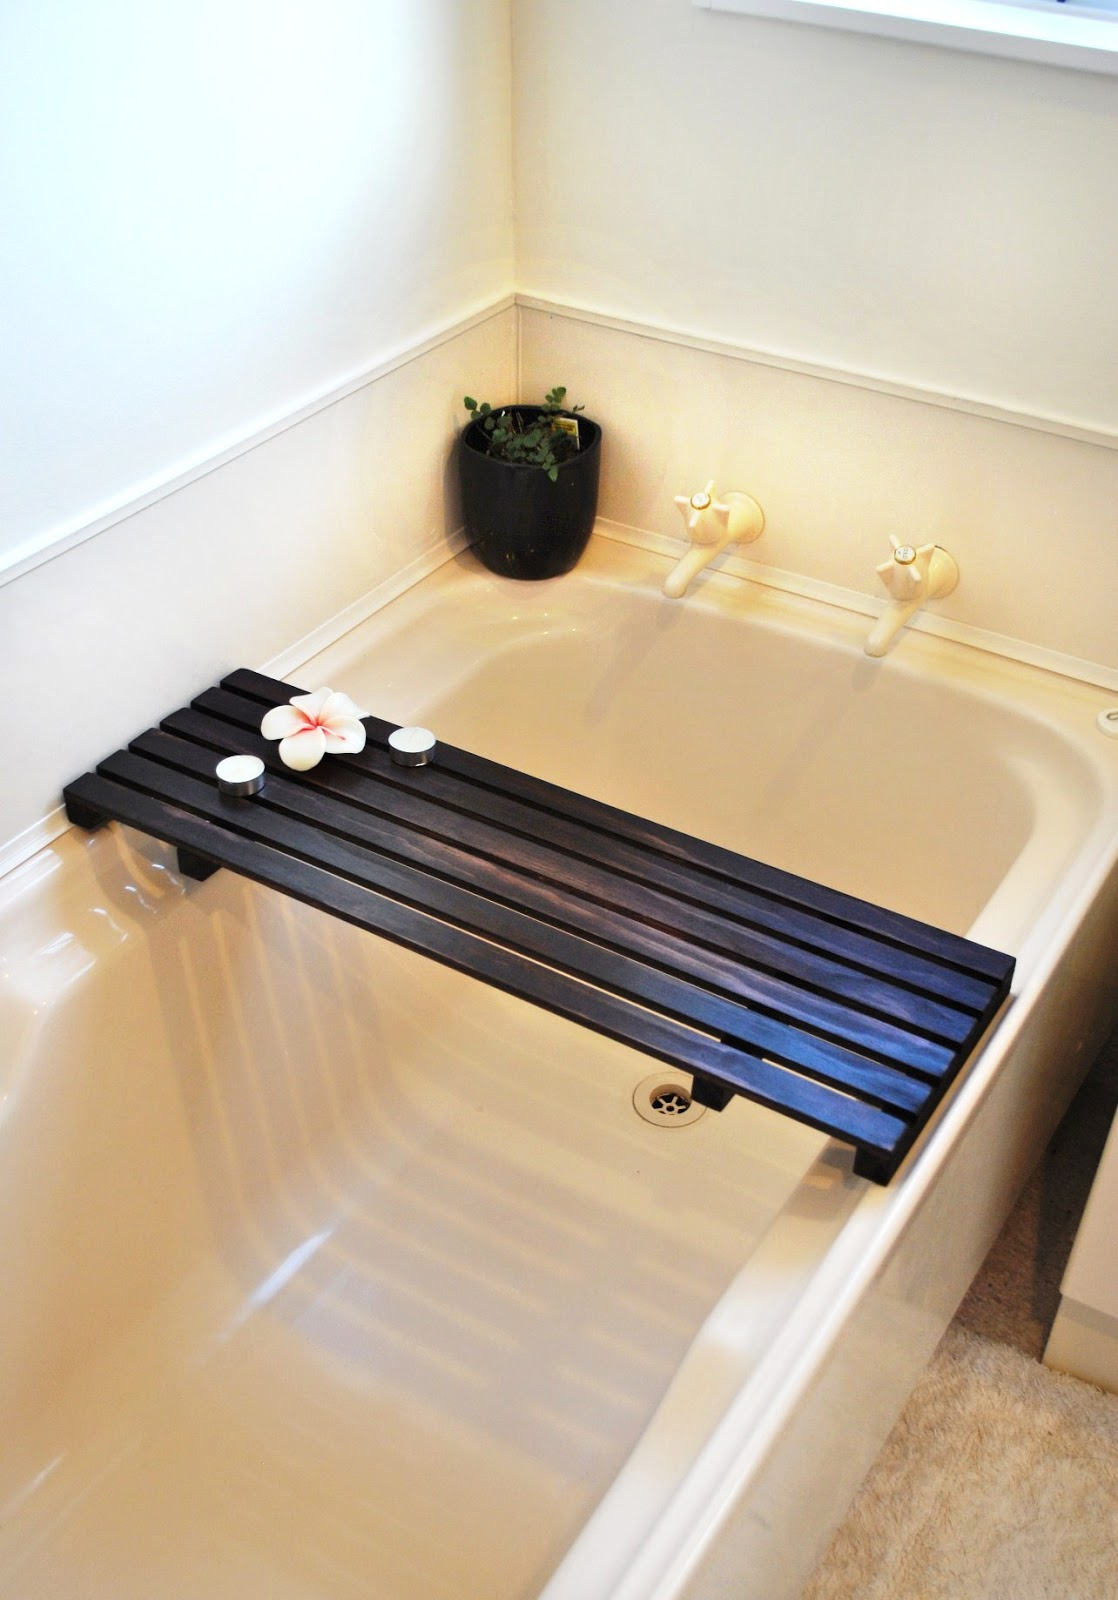 diy kiwi how to build a timber bath caddy. Black Bedroom Furniture Sets. Home Design Ideas